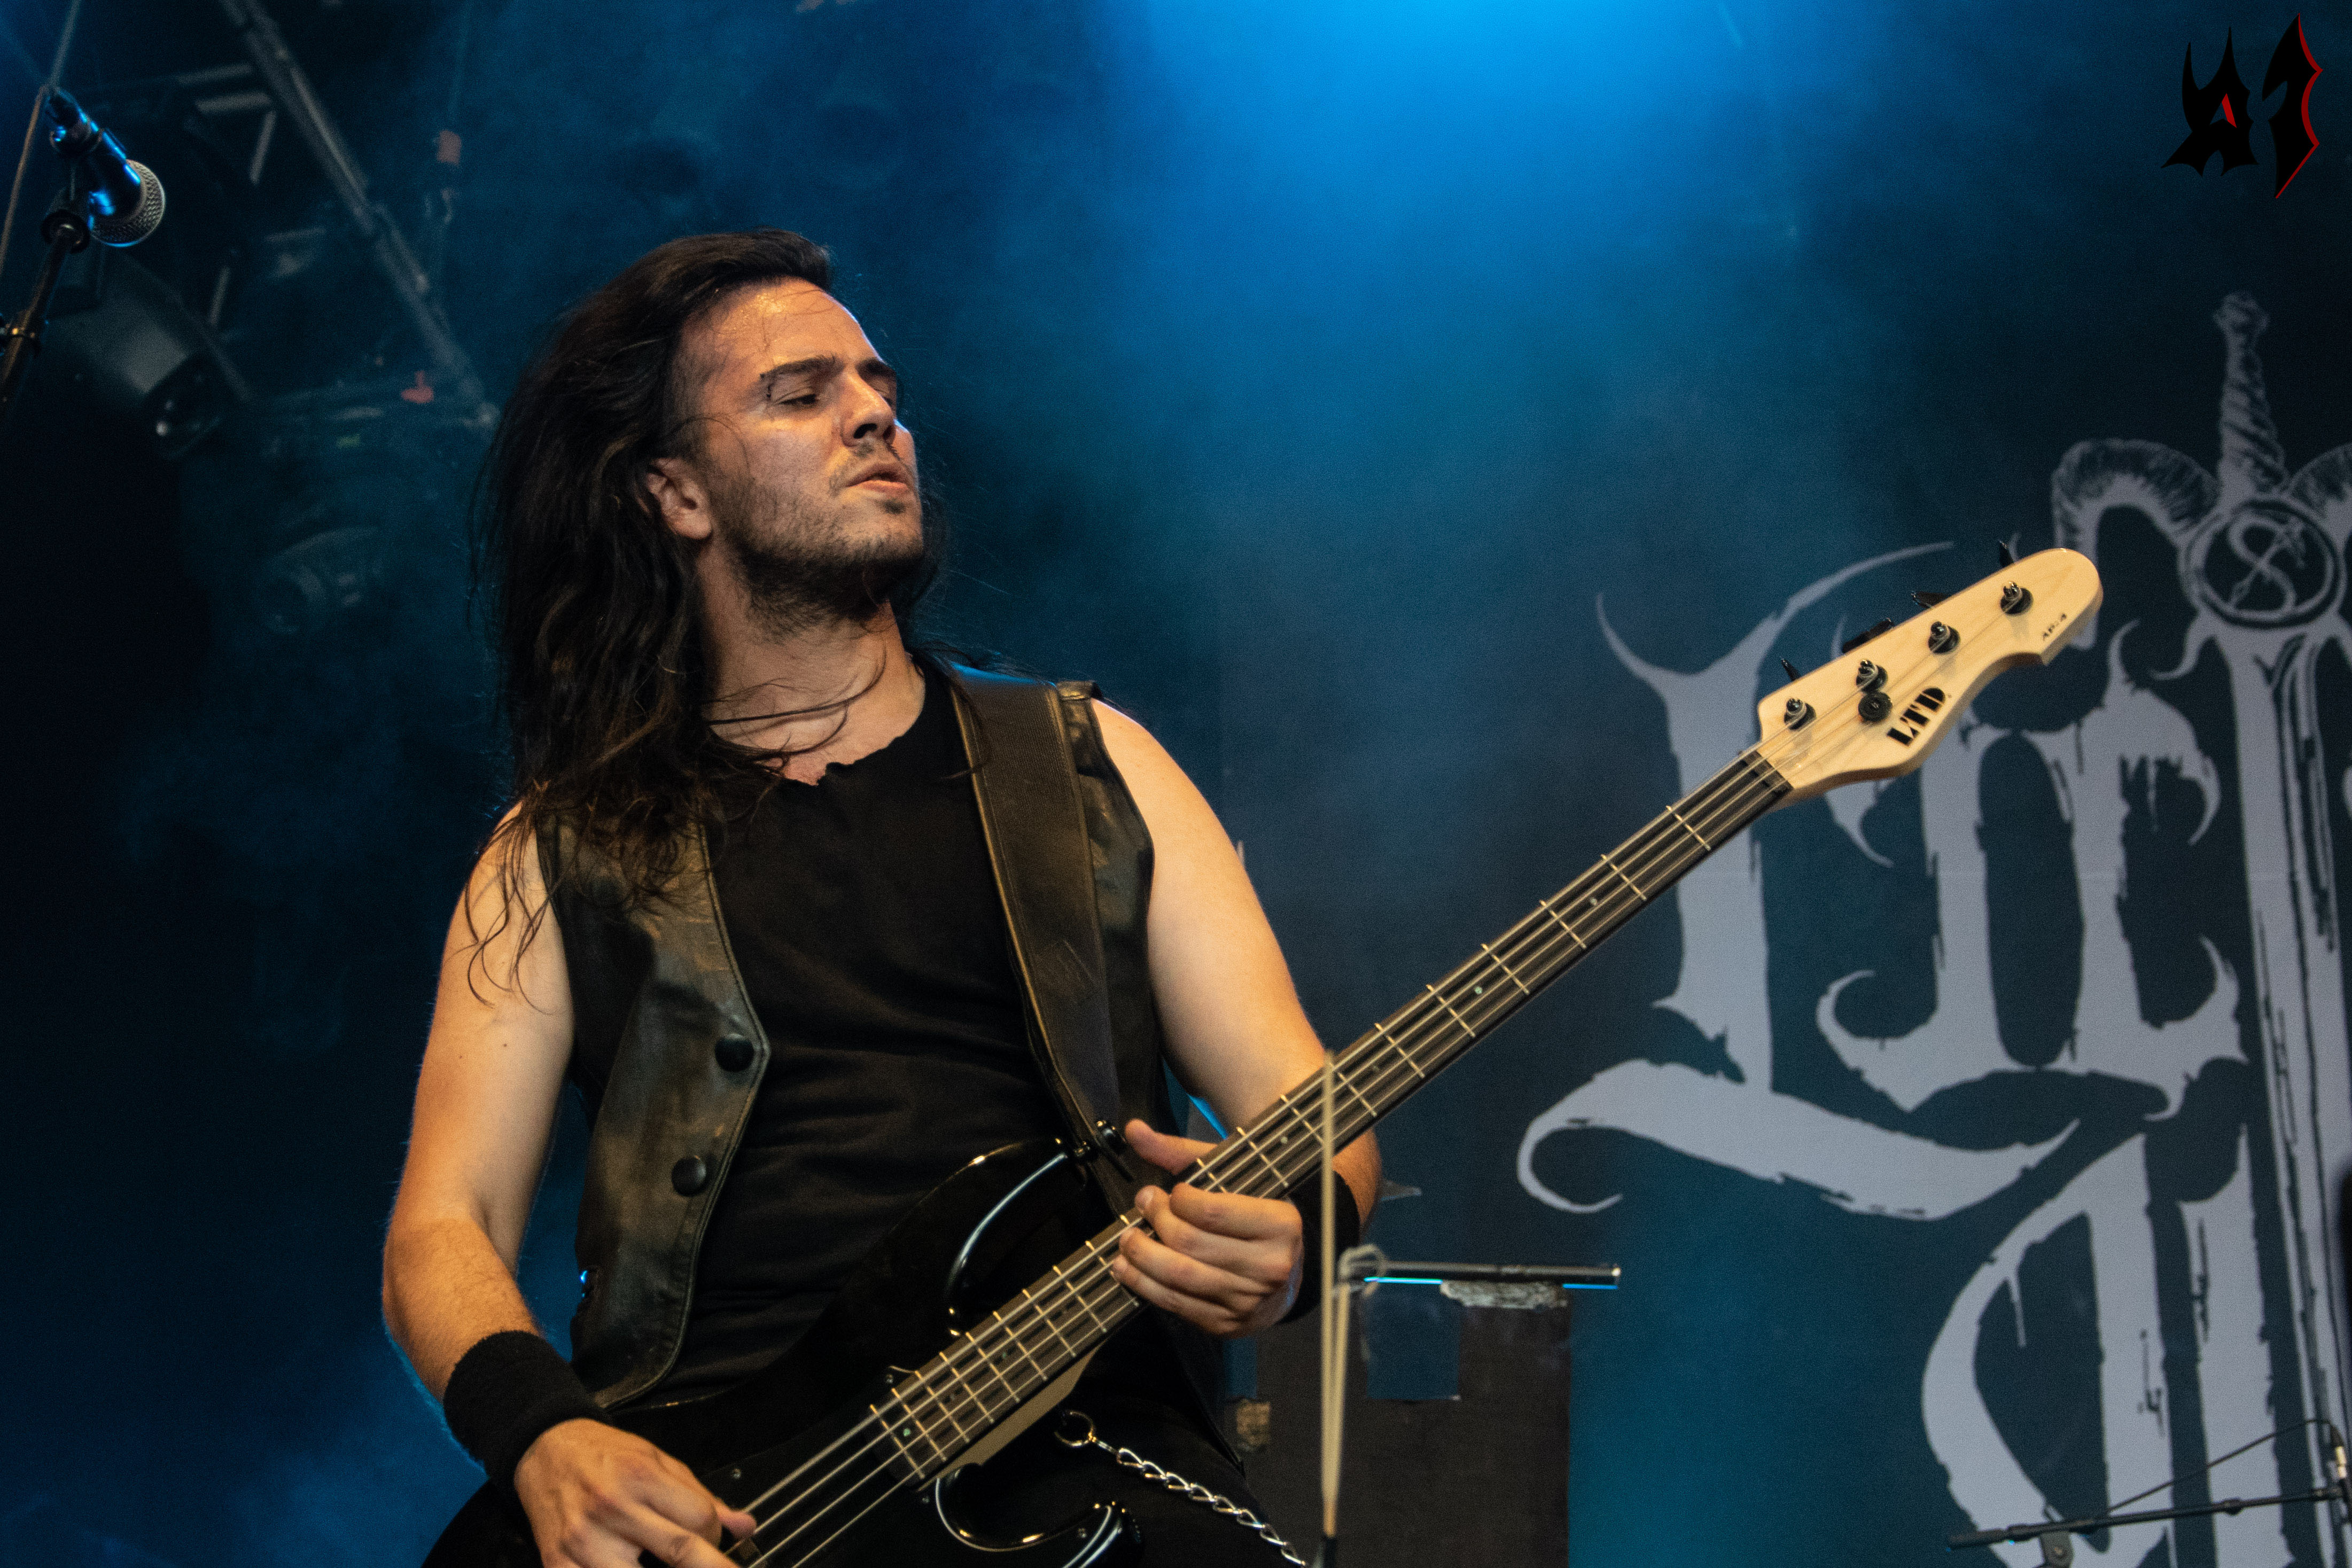 Hellfest - Lucifer's Child - 15